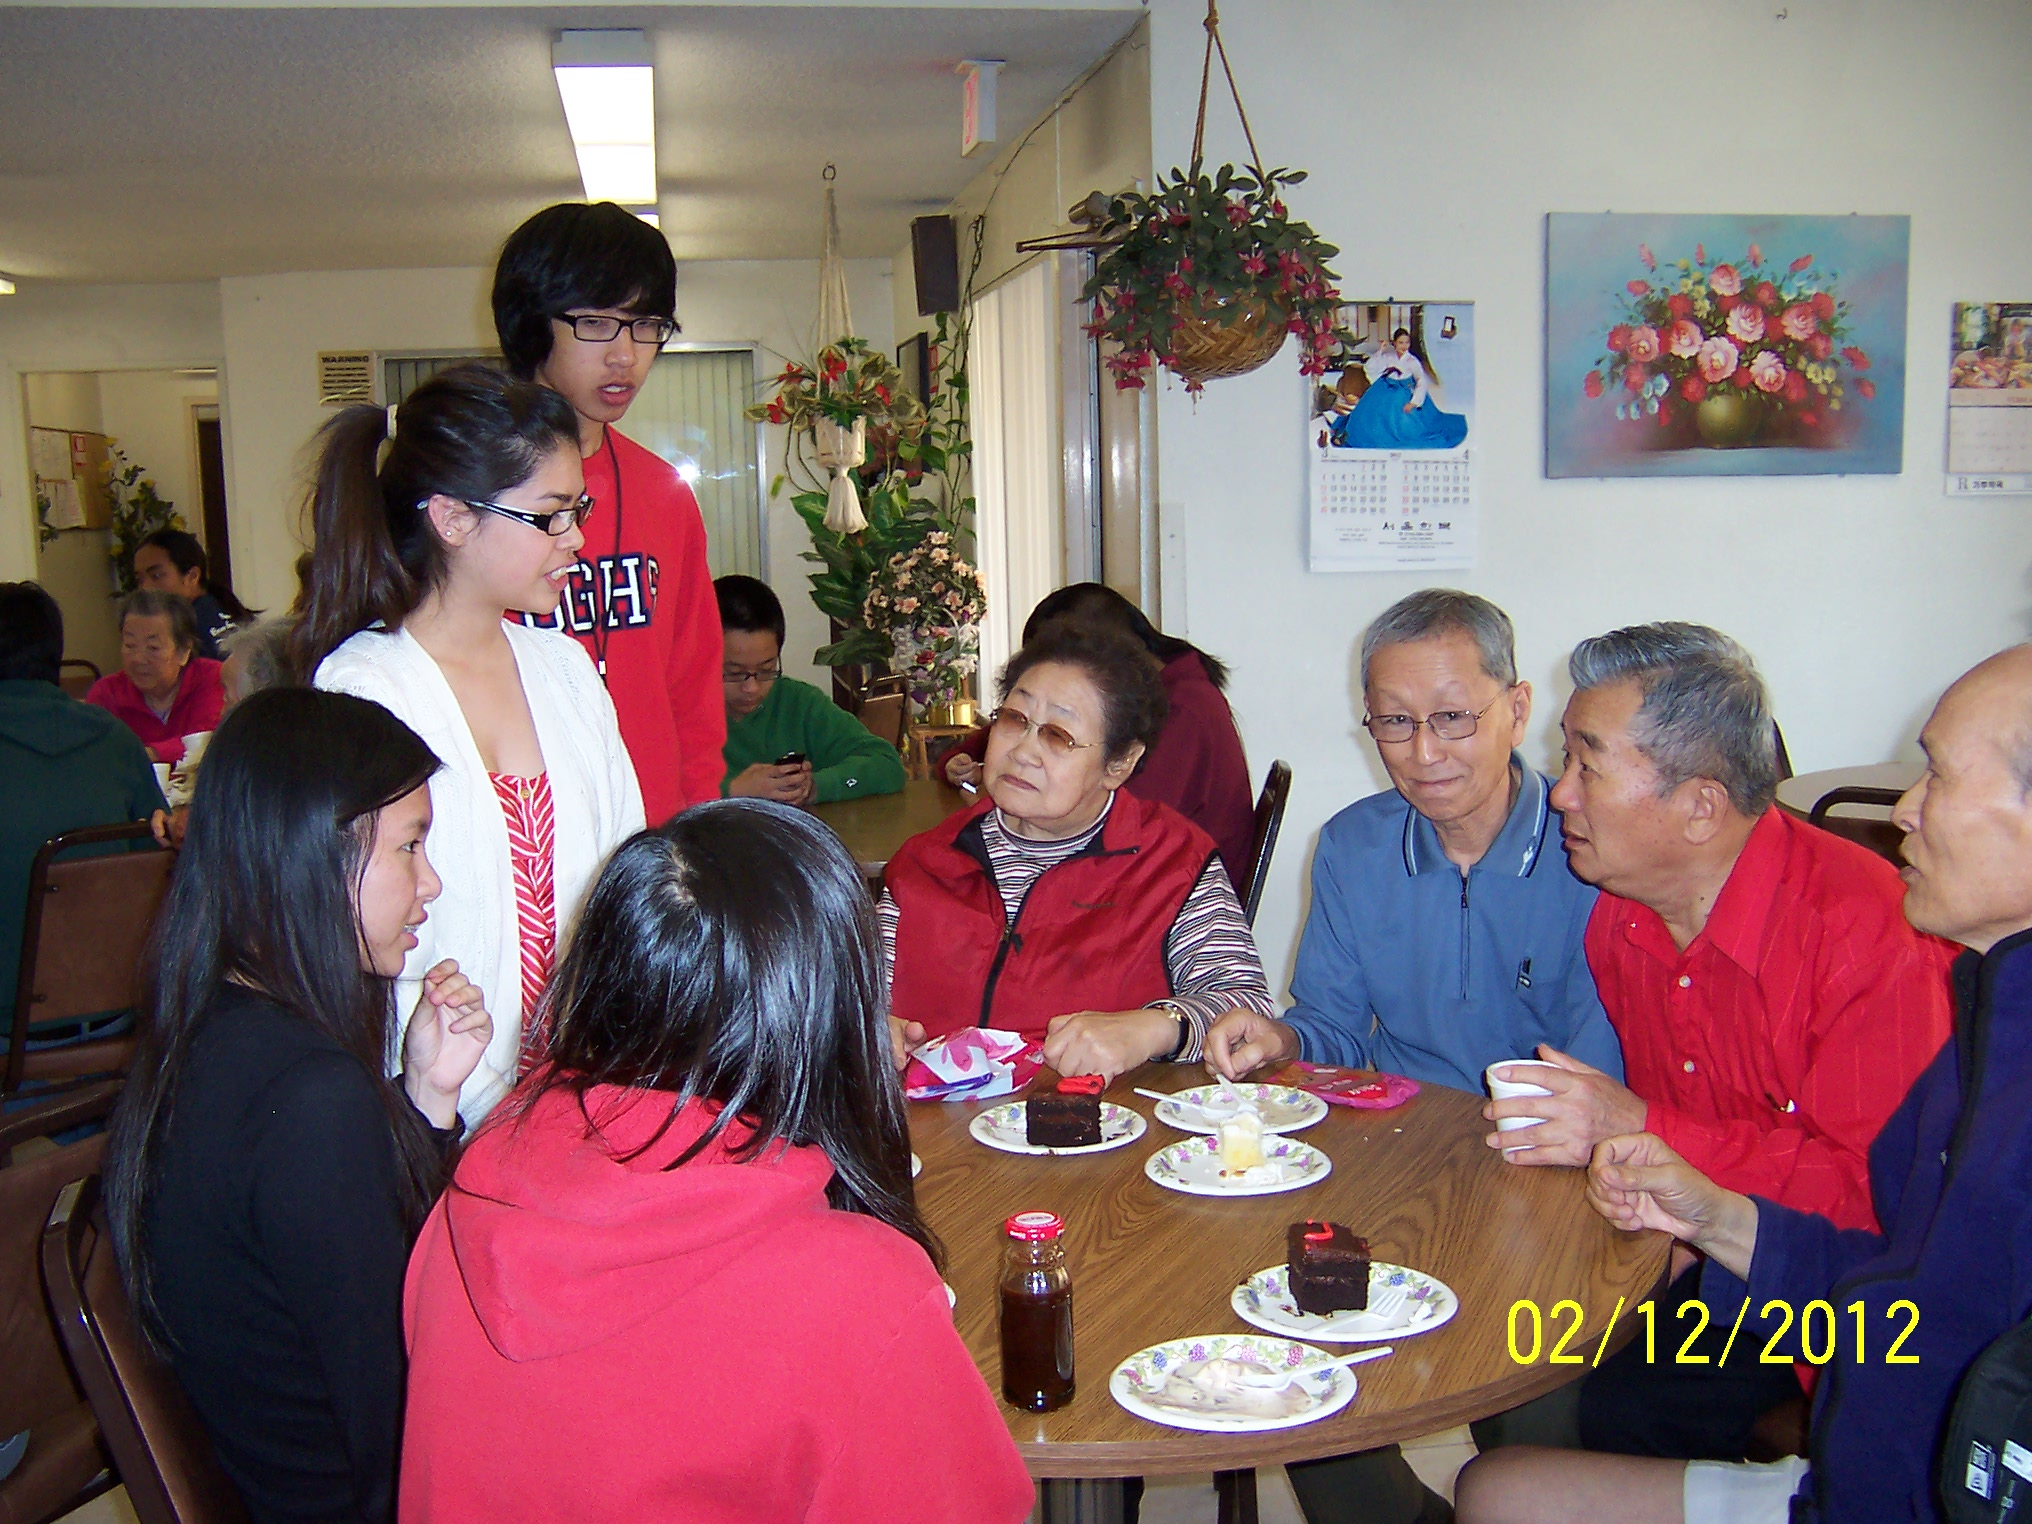 2012-02-12_WADY-Team-Party-for-Frail-Seniors_0044.JPG